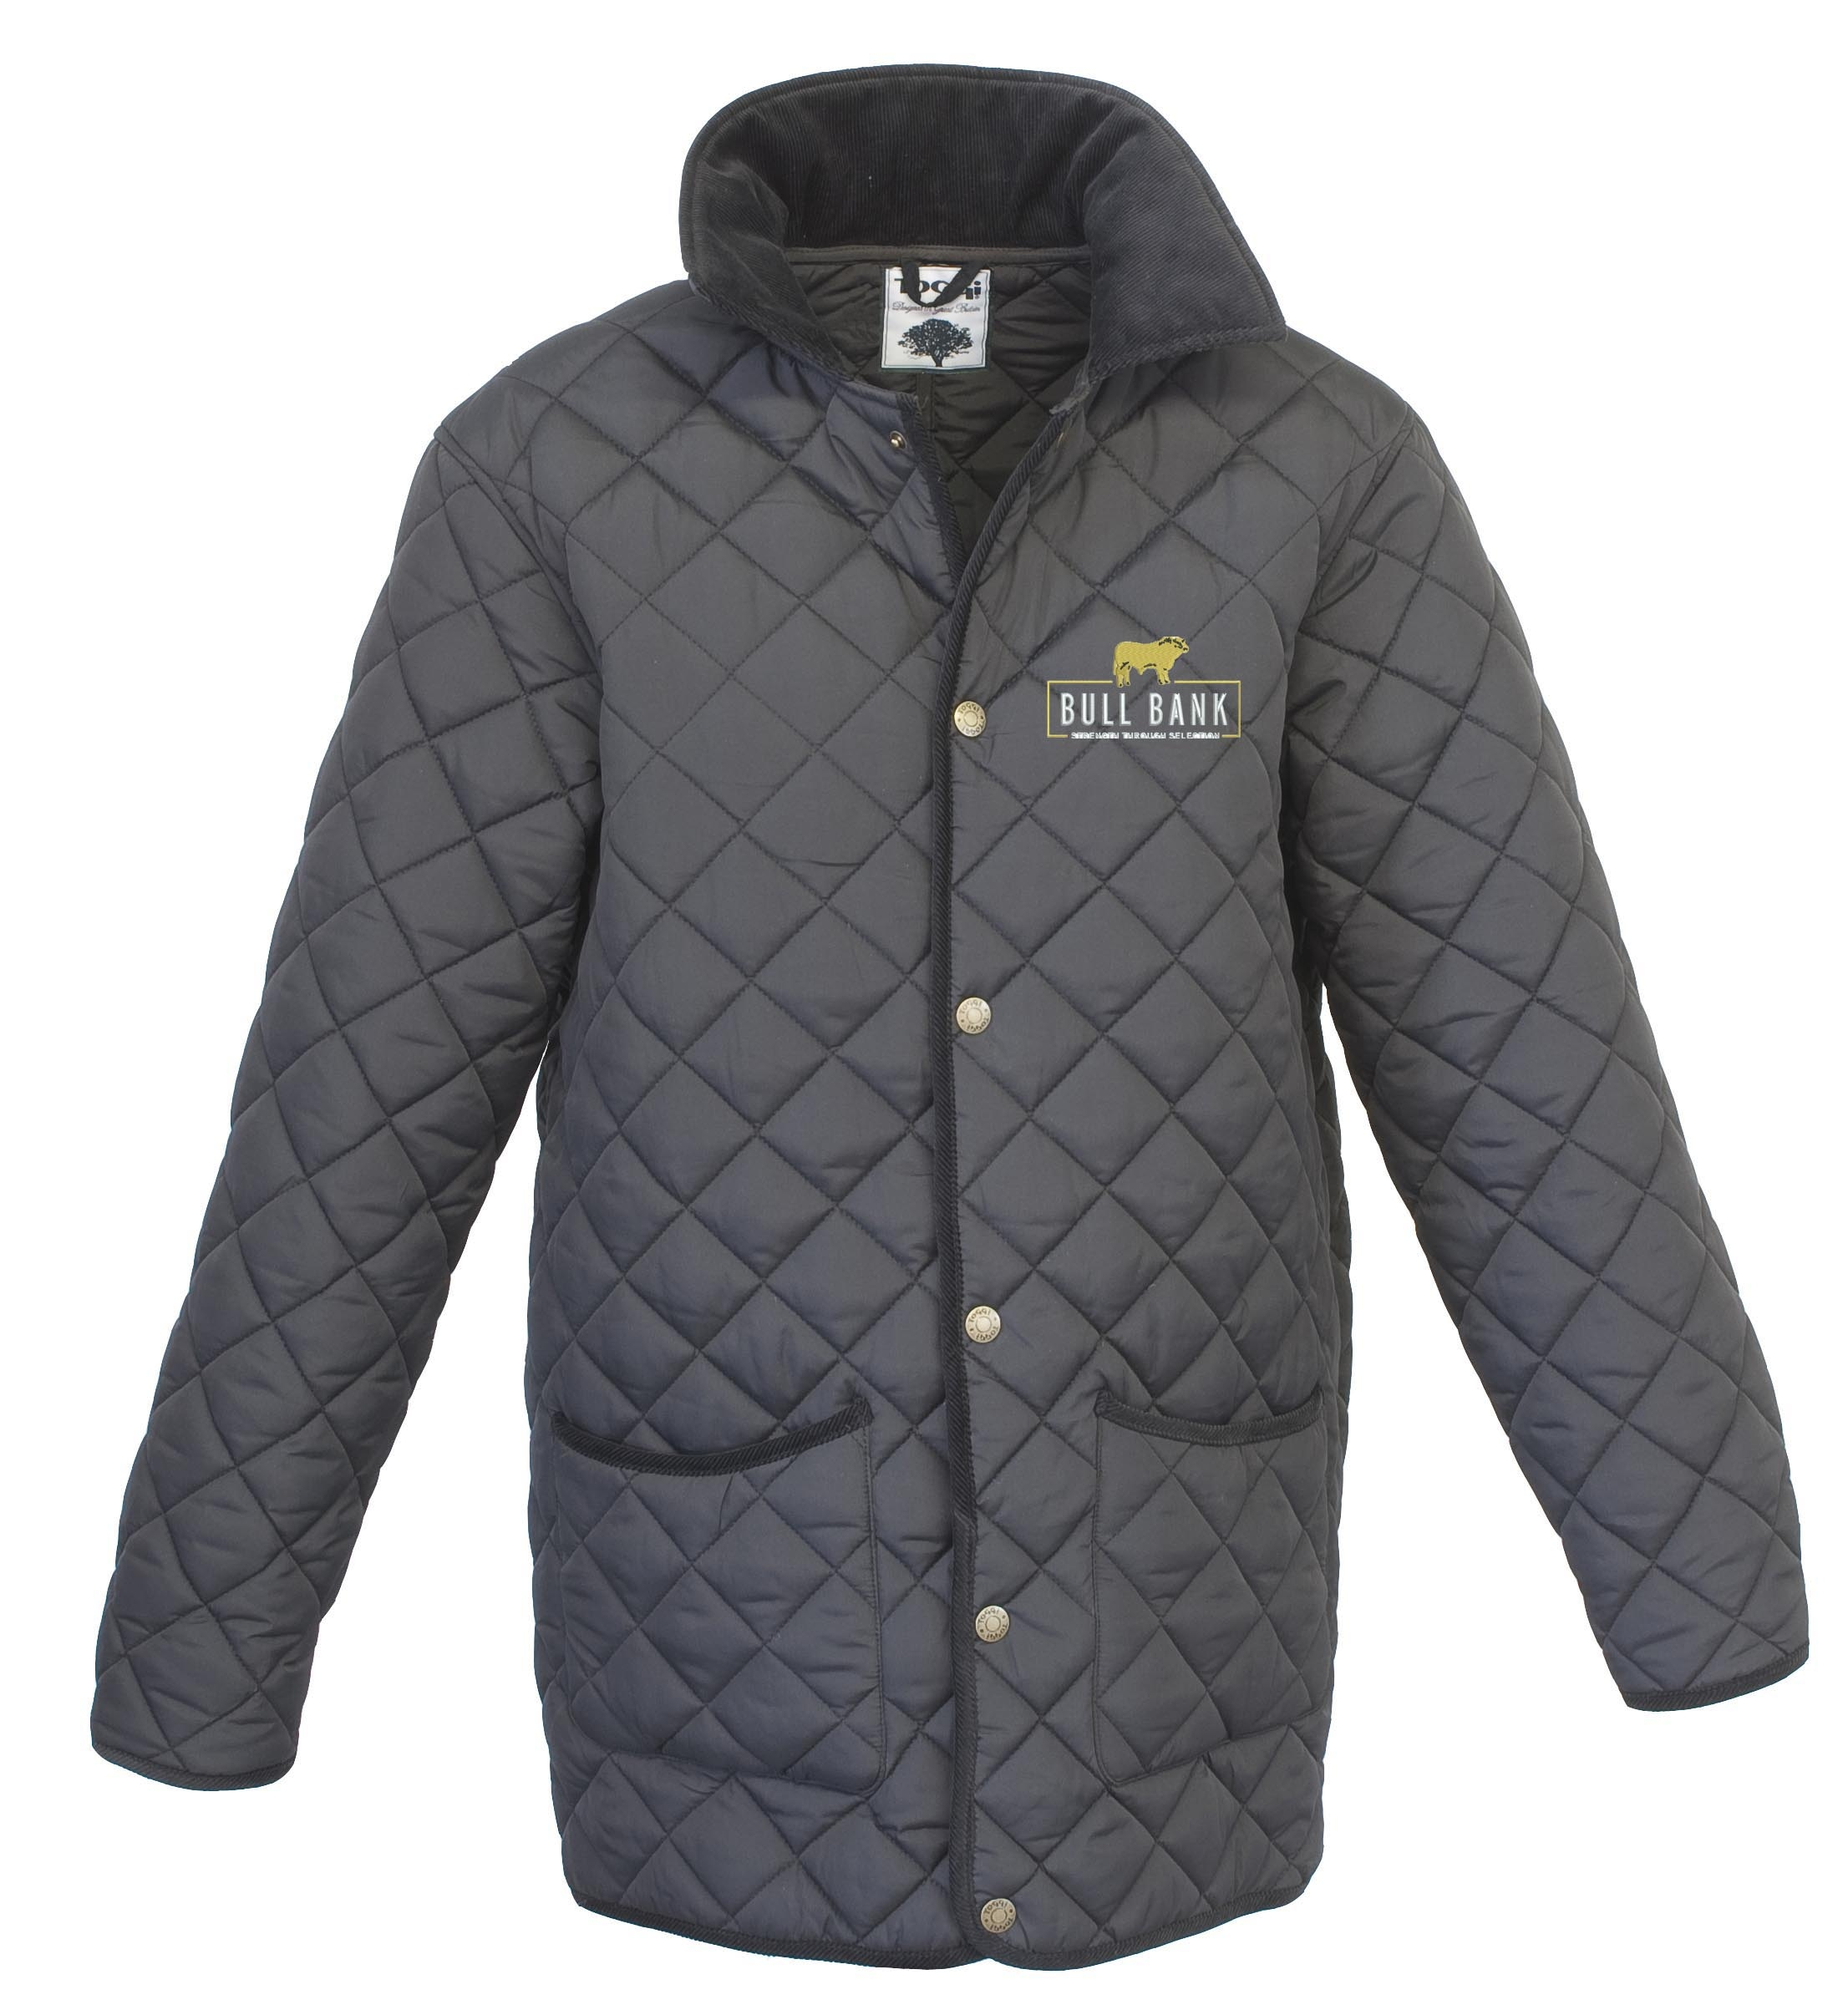 Bull Bank Mens Quilted Jacket